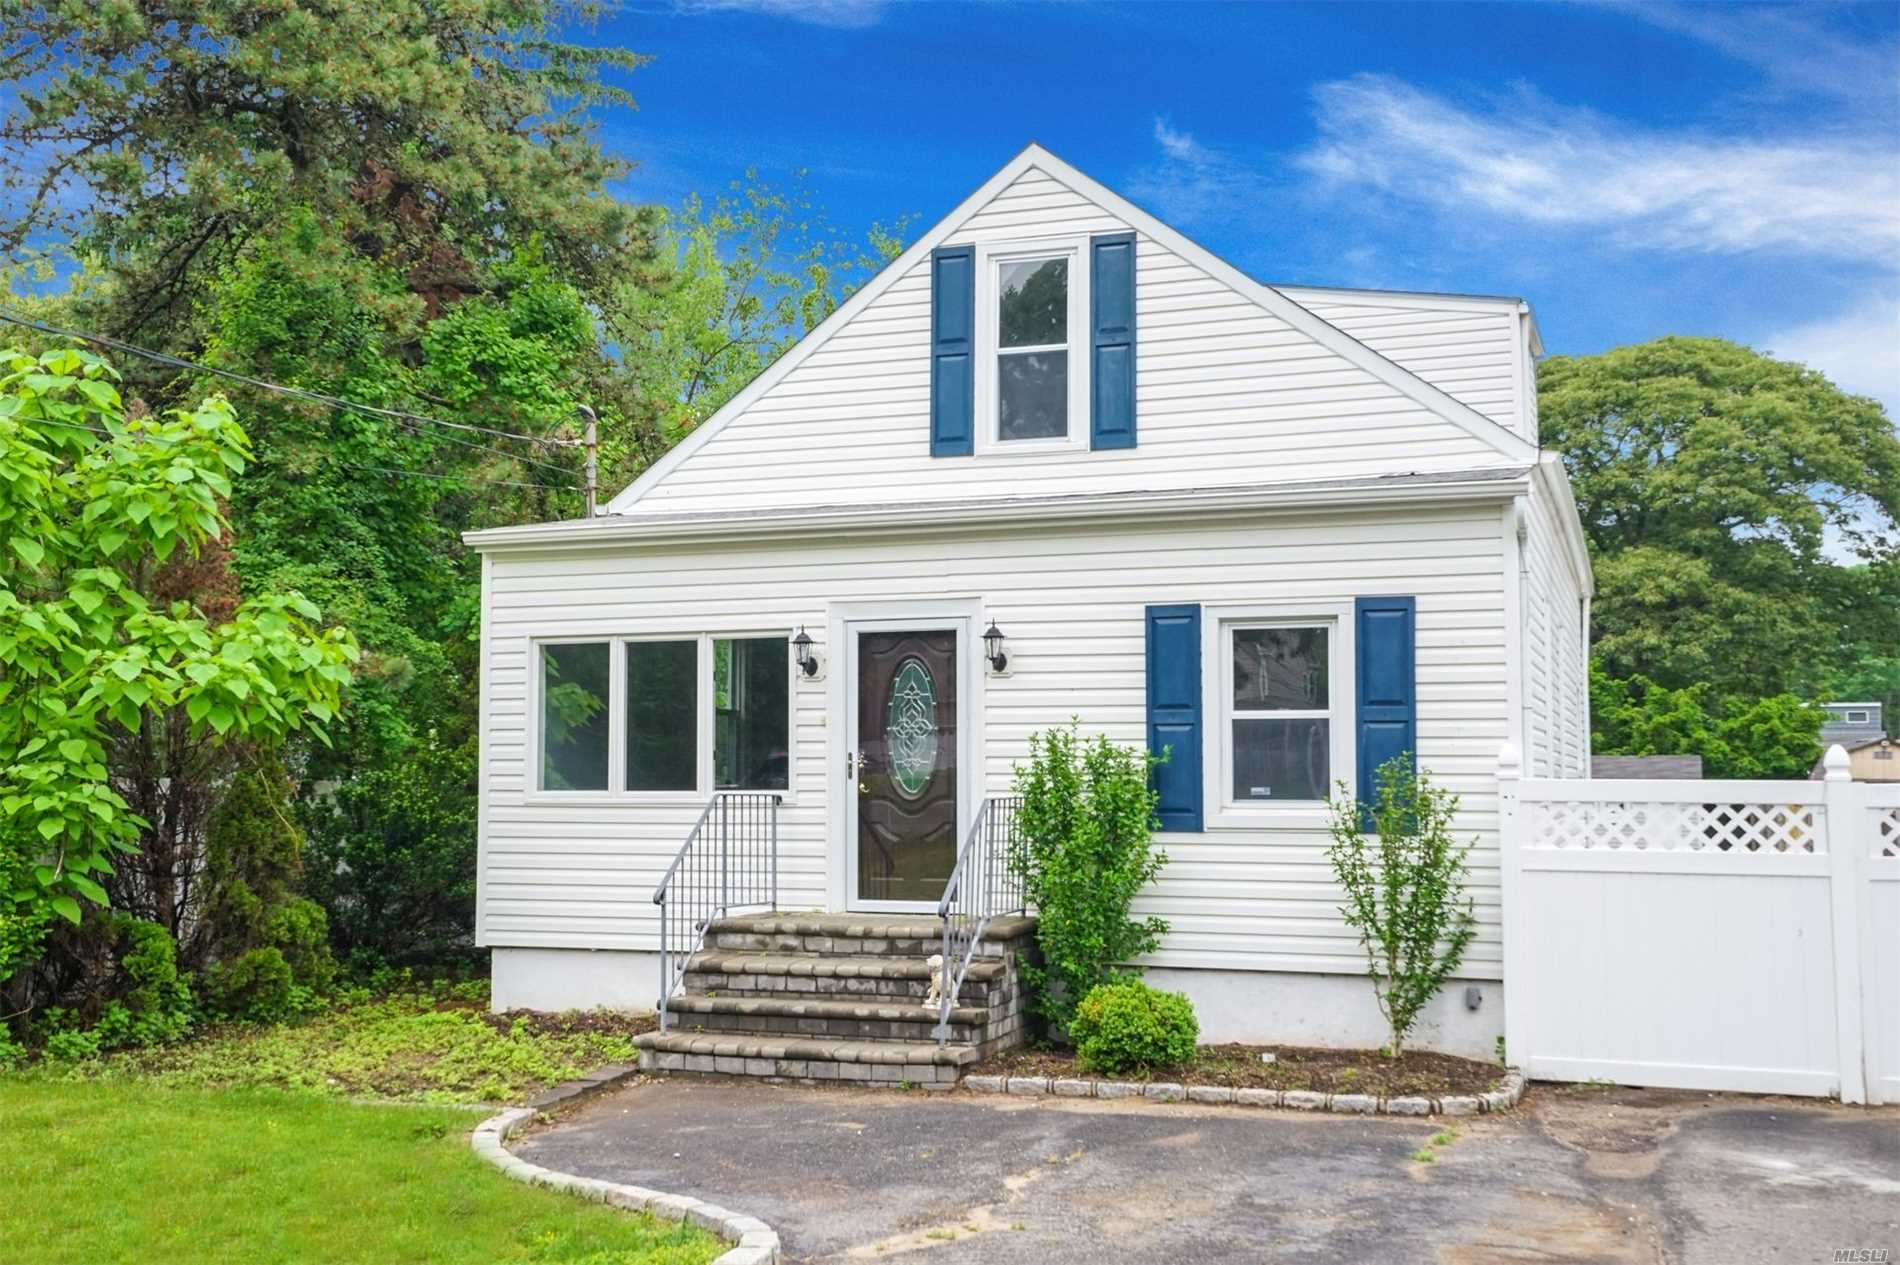 Completely Renovated, Open Concept Home!This Home Will Wow You From The Moment You Walk In. Brand New Hardwood Floors Thru-Out 1st Floor. Open Lr/Dr/ Kitchen, Great For Entertaining! White Cabinets, Granite Counters & New Ss Appl, The Fbth & 2 Br's Complete 1st Floor. Upstairs Find Your Mstr Suite W/Lg Br, New Mstr Bath & Laundry, Wic, New Carpet. Crown Moldings, Hi-Hats Thru-Out, New Wood Floors, New Baseboards, New Hw Heater, 200 Amp Elec, Lg Deck, Flat Fenced Prop, Low Taxes, Dead End Street